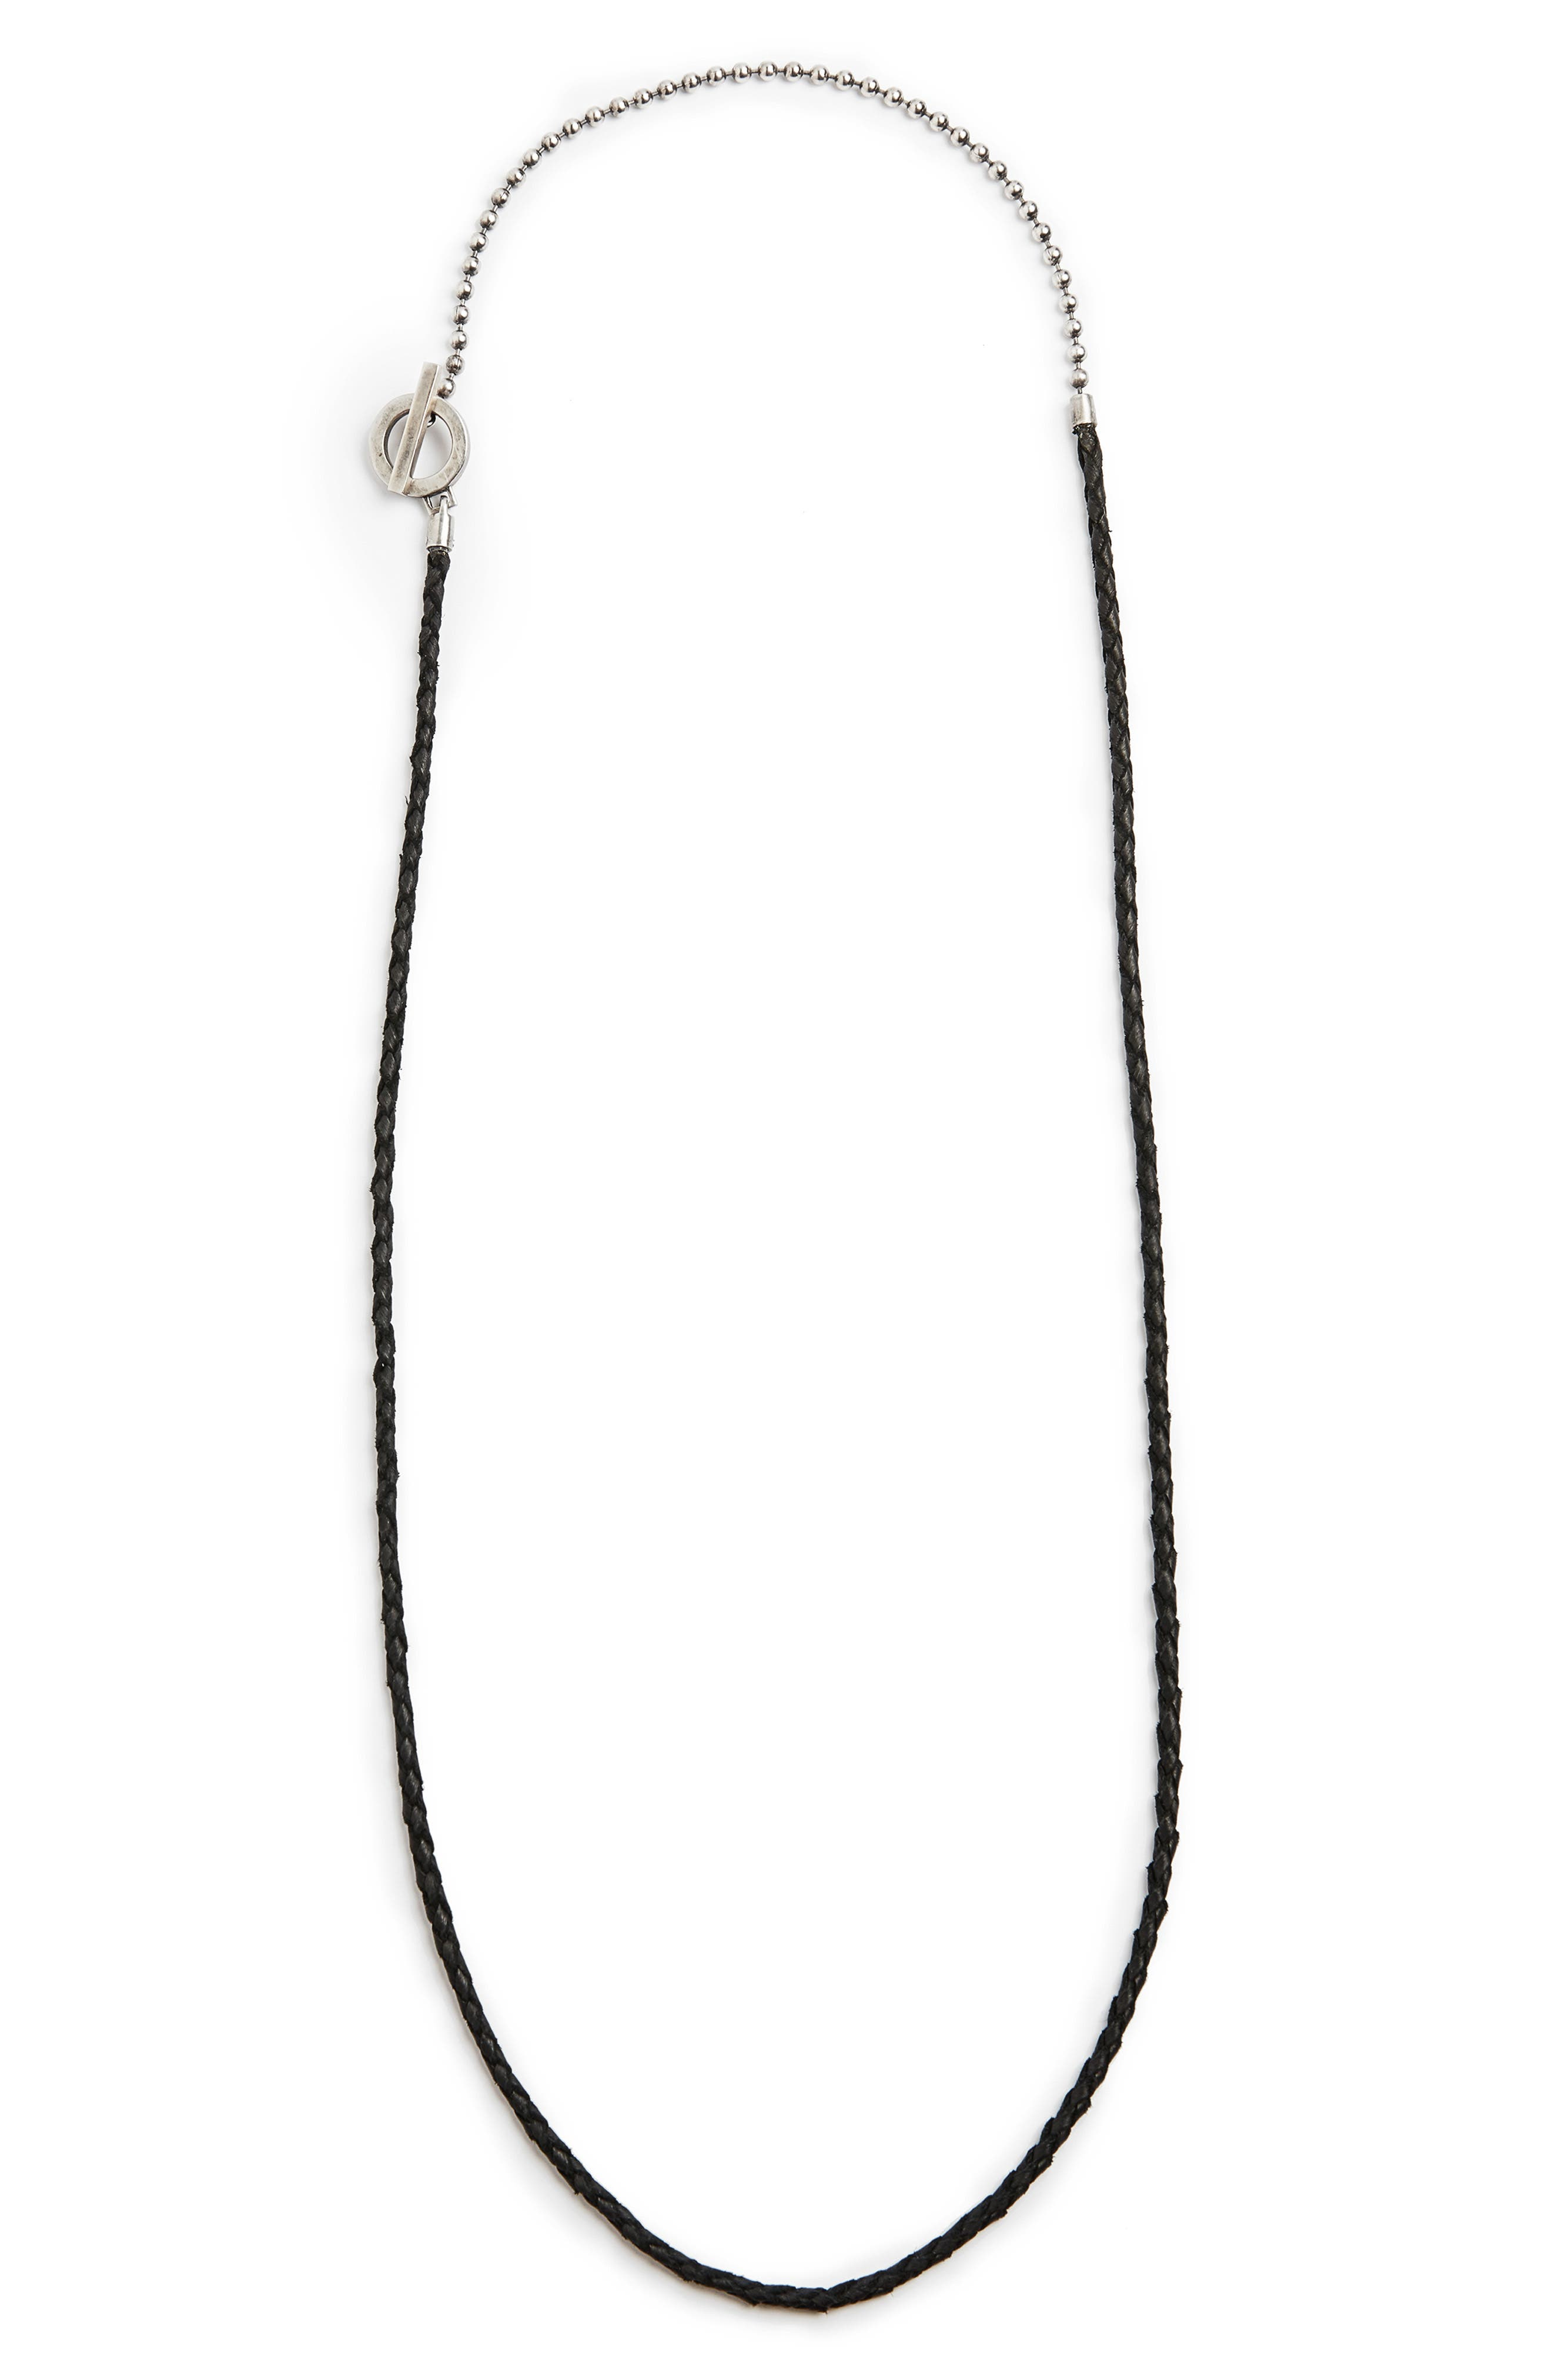 Leather & Sterling Silver Ball Chain Necklace,                         Main,                         color, SILVER/ BLACK